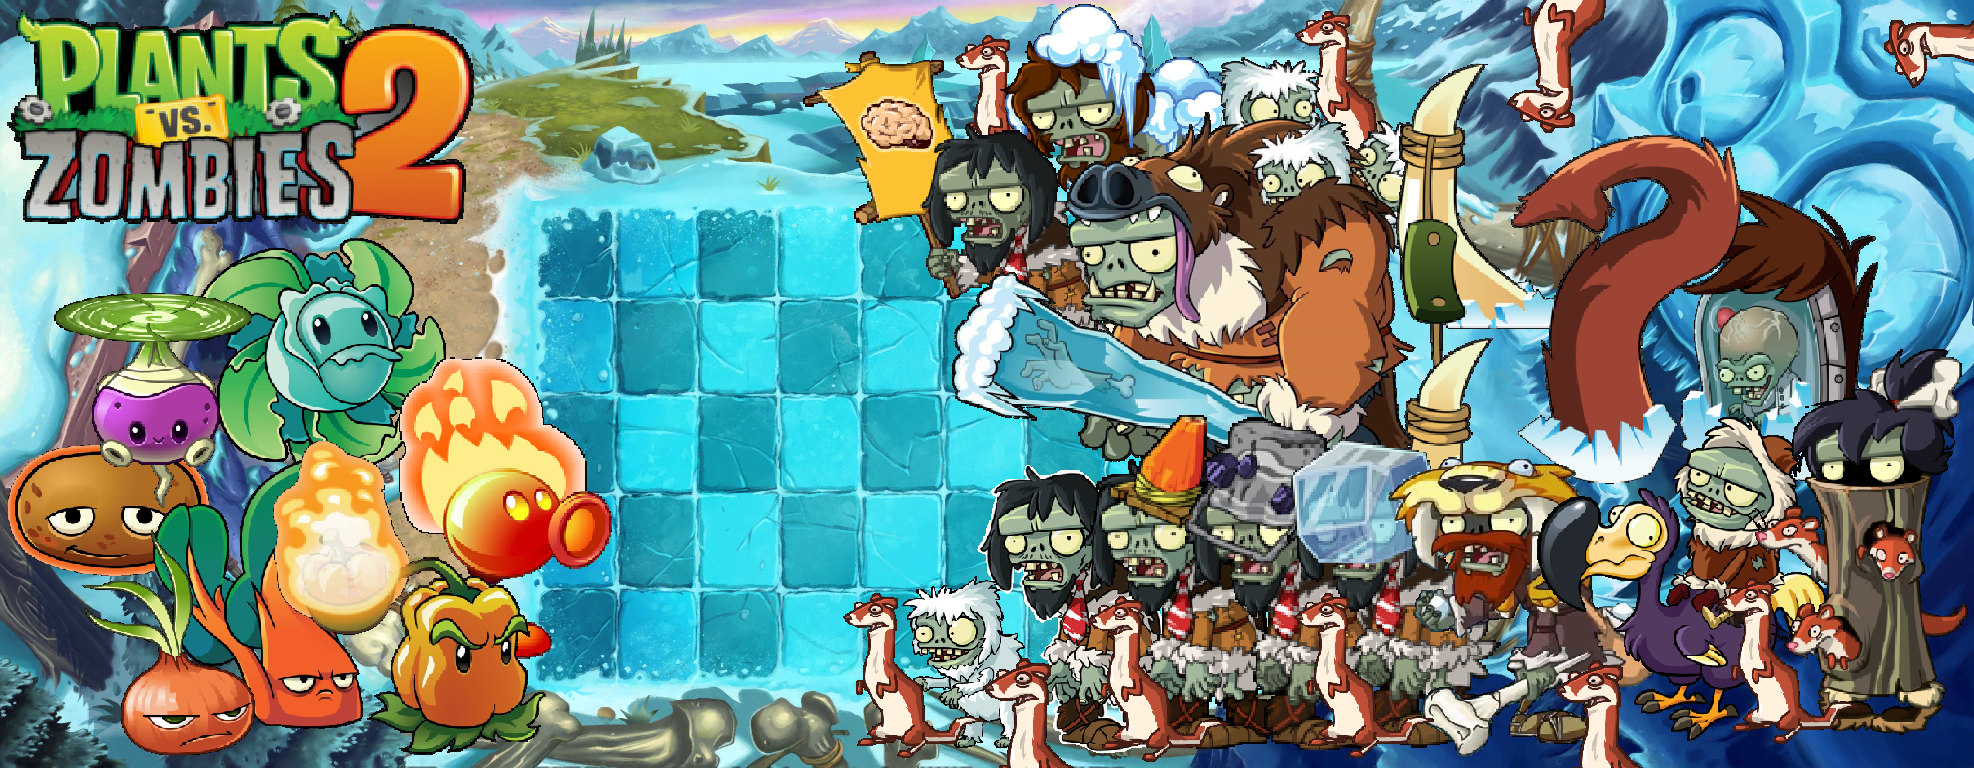 Plants Vs Zombies 2 Frostbite Caves Wallpaper By Photographerferd